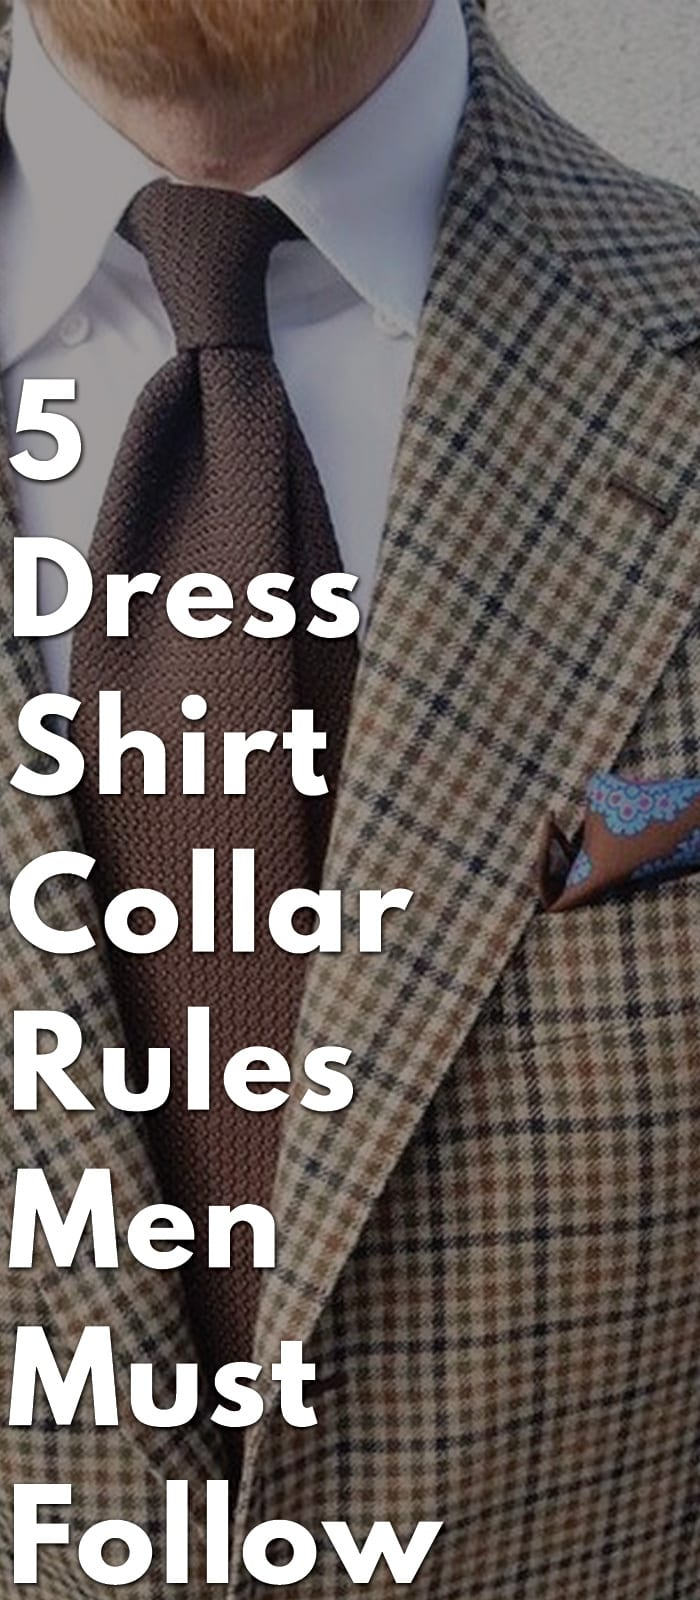 5-Dress-Shirt-Collar-Rules-Men-Must-Follow